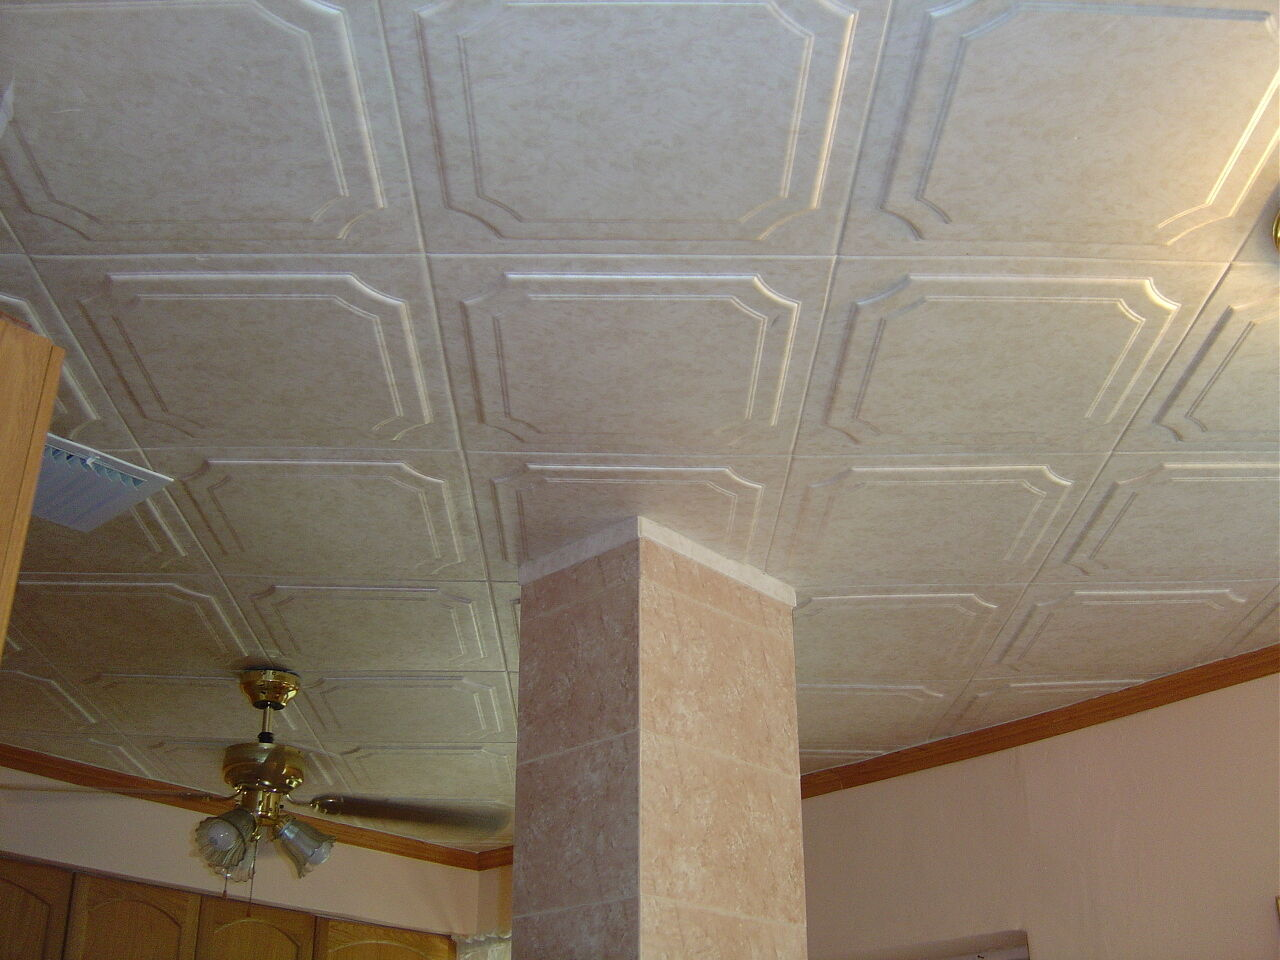 Tin look styrofoam ceiling tiles easy installation r8w ebay picture 1 of 5 dailygadgetfo Gallery